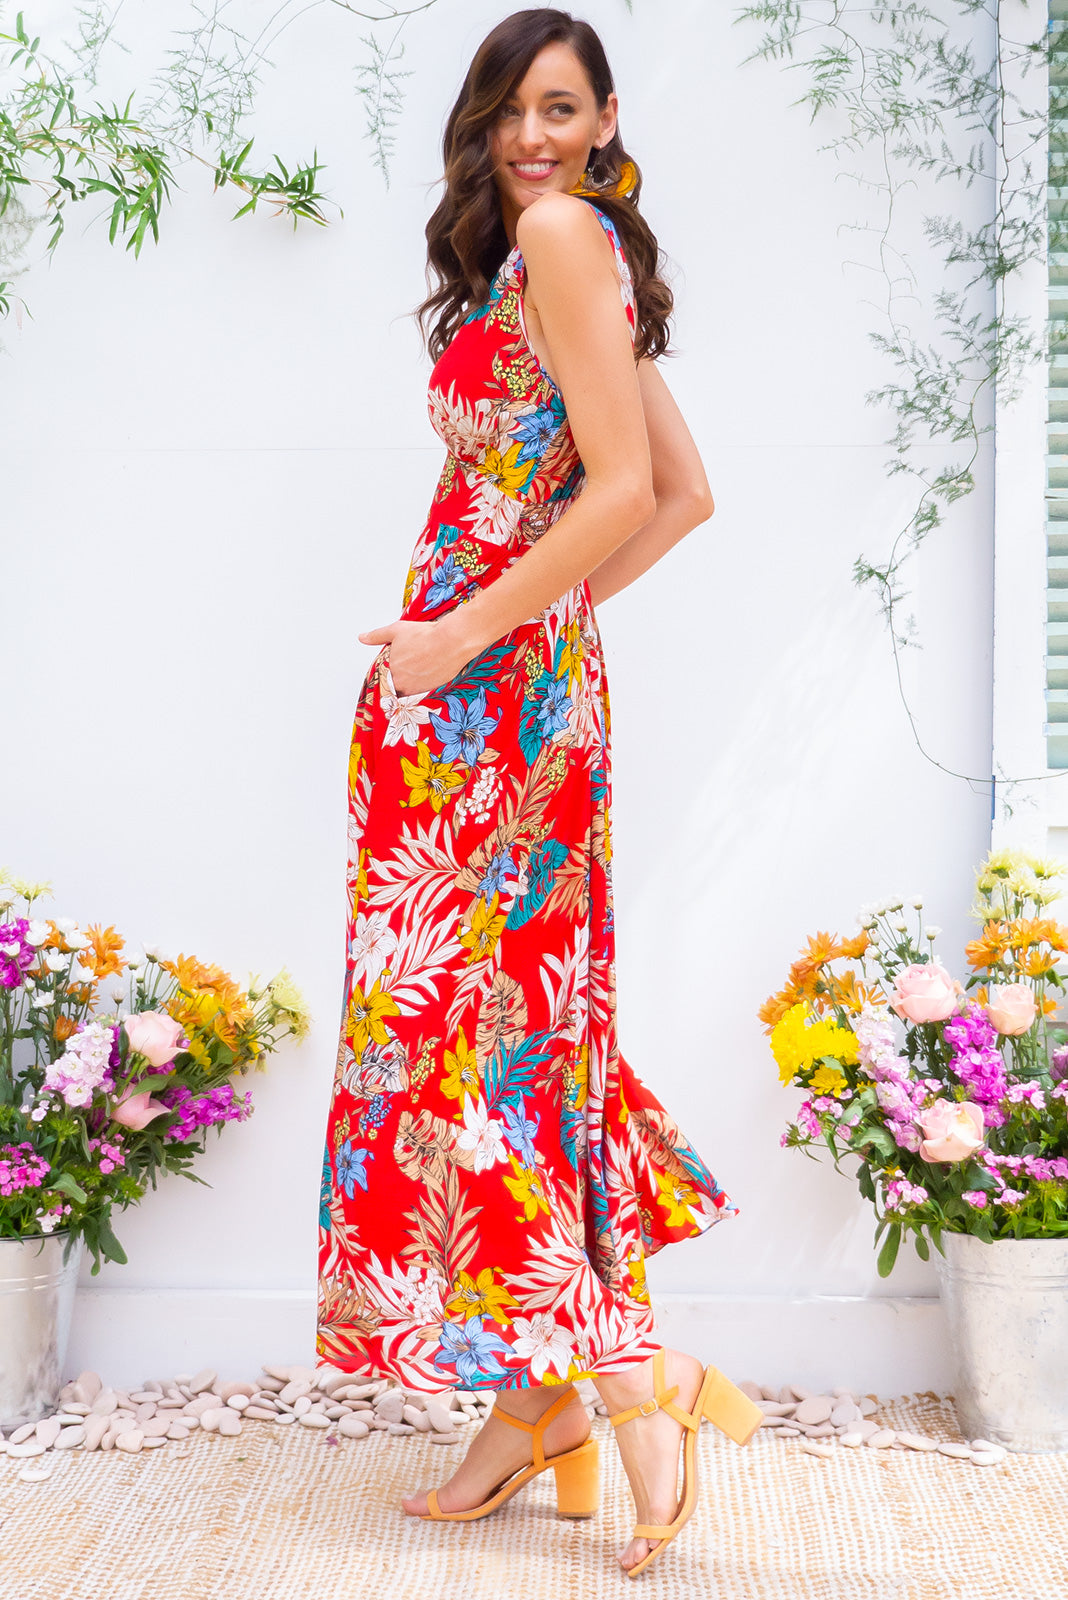 Lola Jungle Rouge Maxi Dress